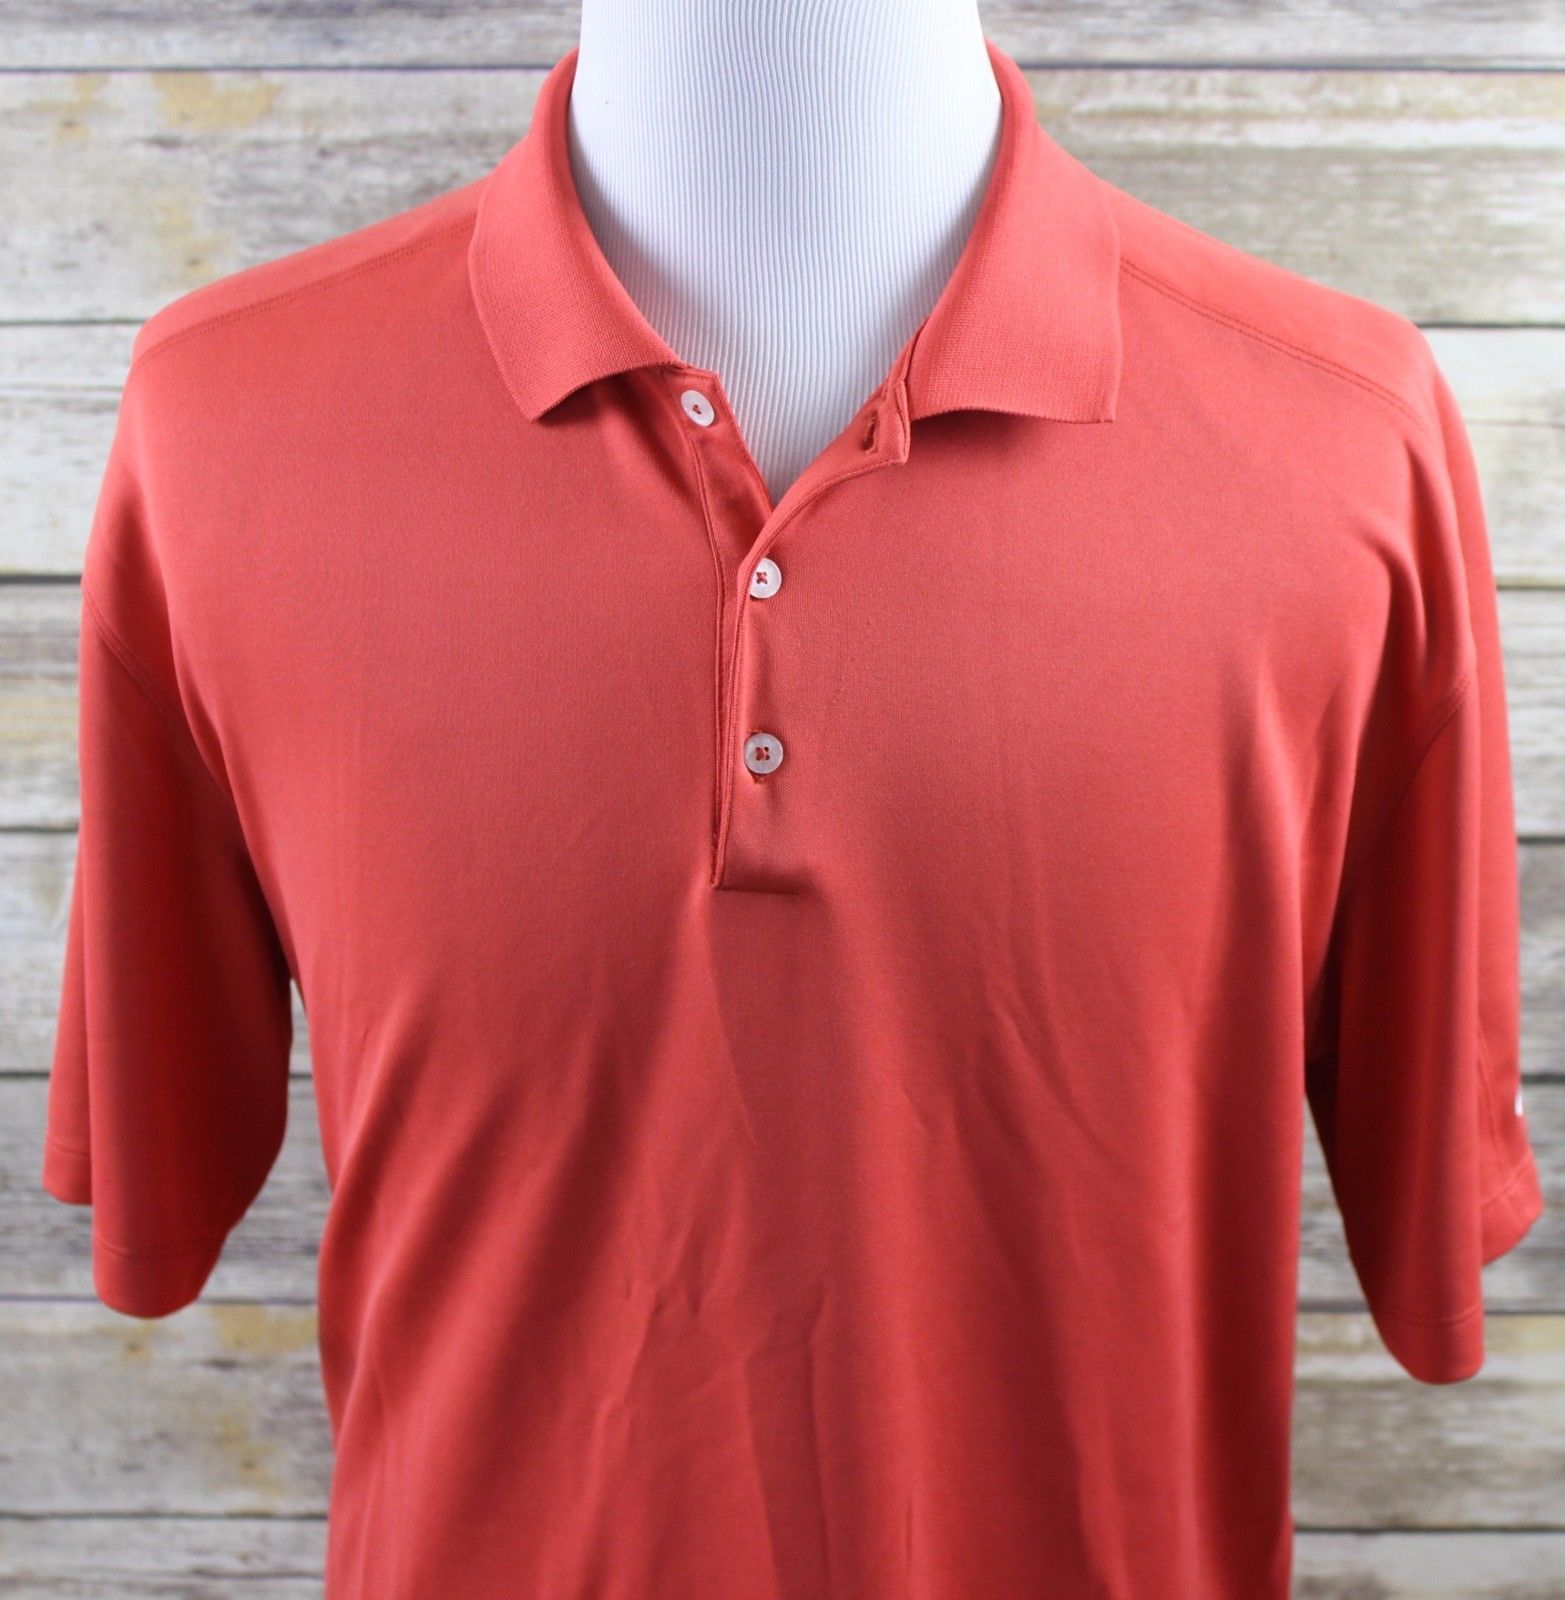 f5b985860 NEW Nike Golf Dri-Fit Solid Short Sleeve Polo Shirt MENS XL Red ...